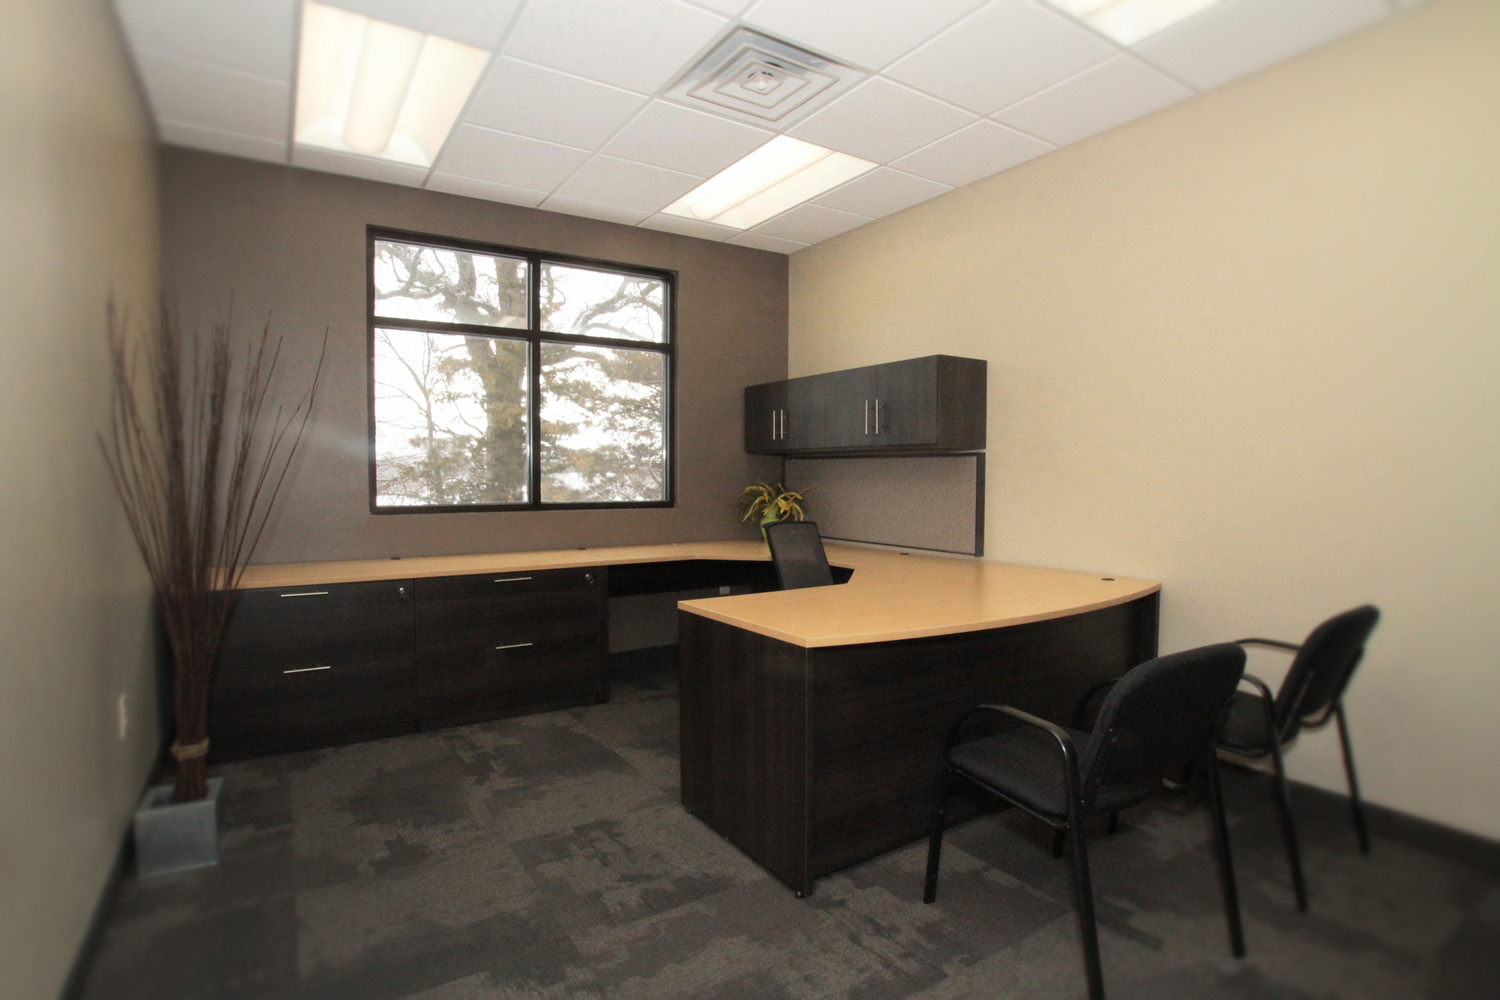 Office space design mankato new used office for Small professional office design